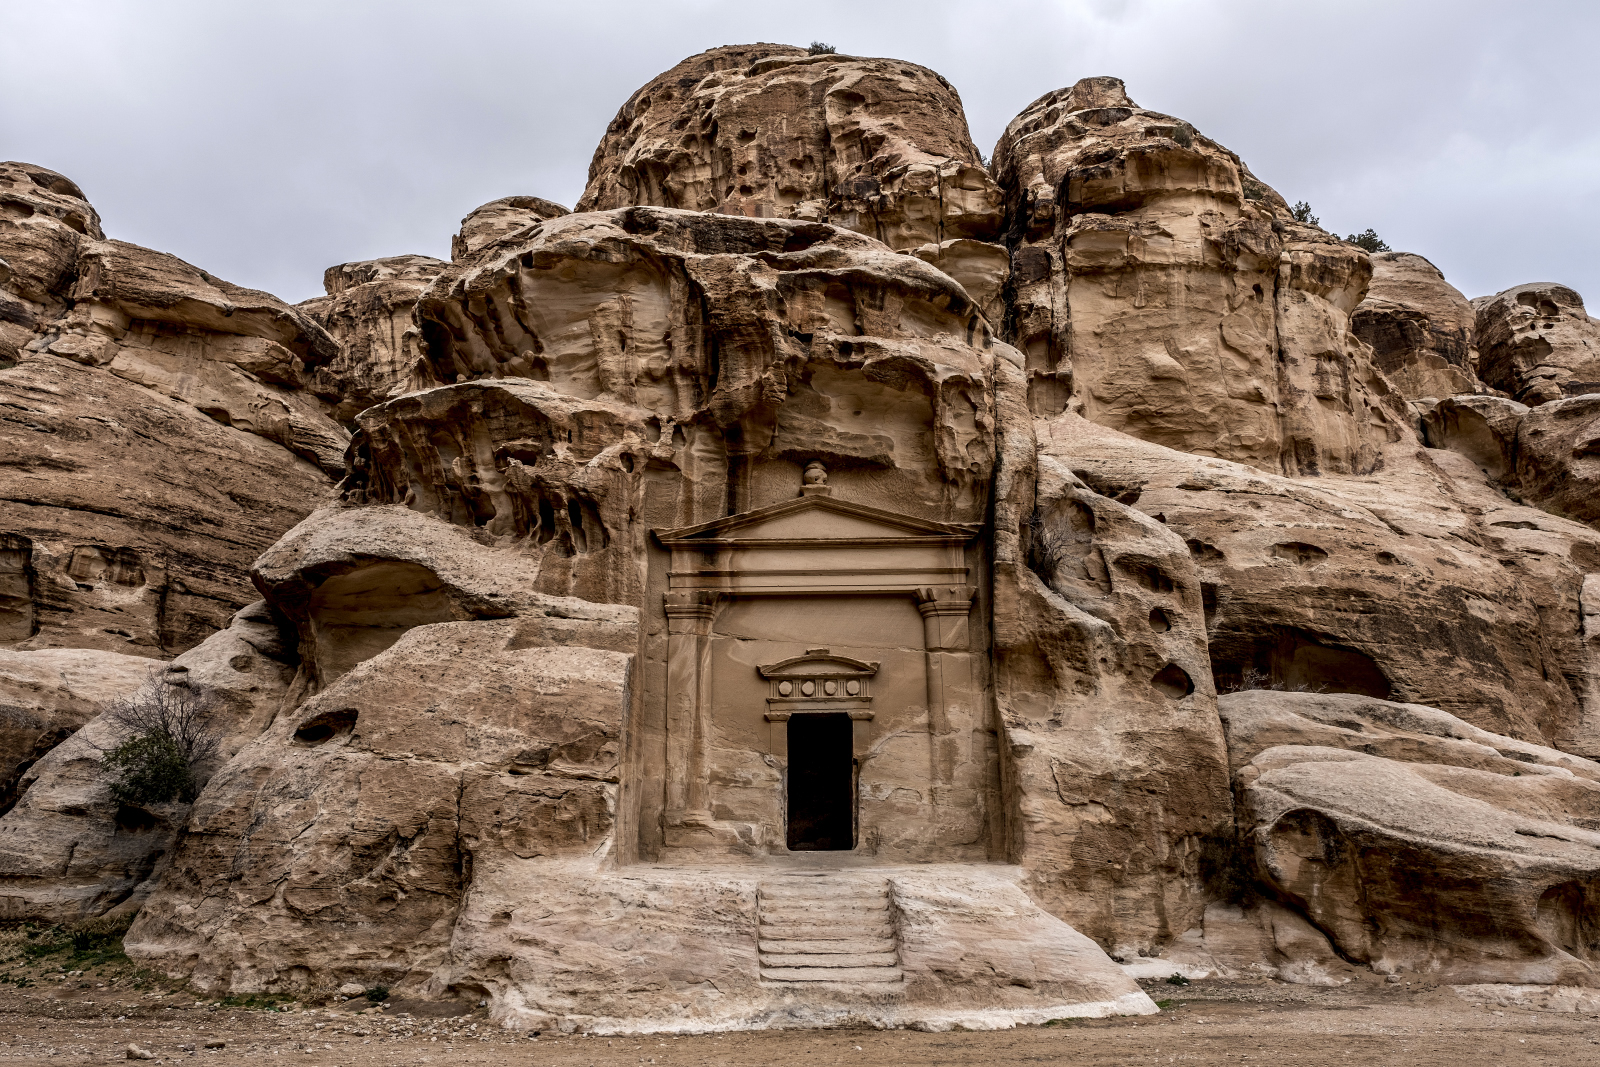 Siq al-Barid, or Little Petra  - an off-the-beaten-path introduction to the nabatean people